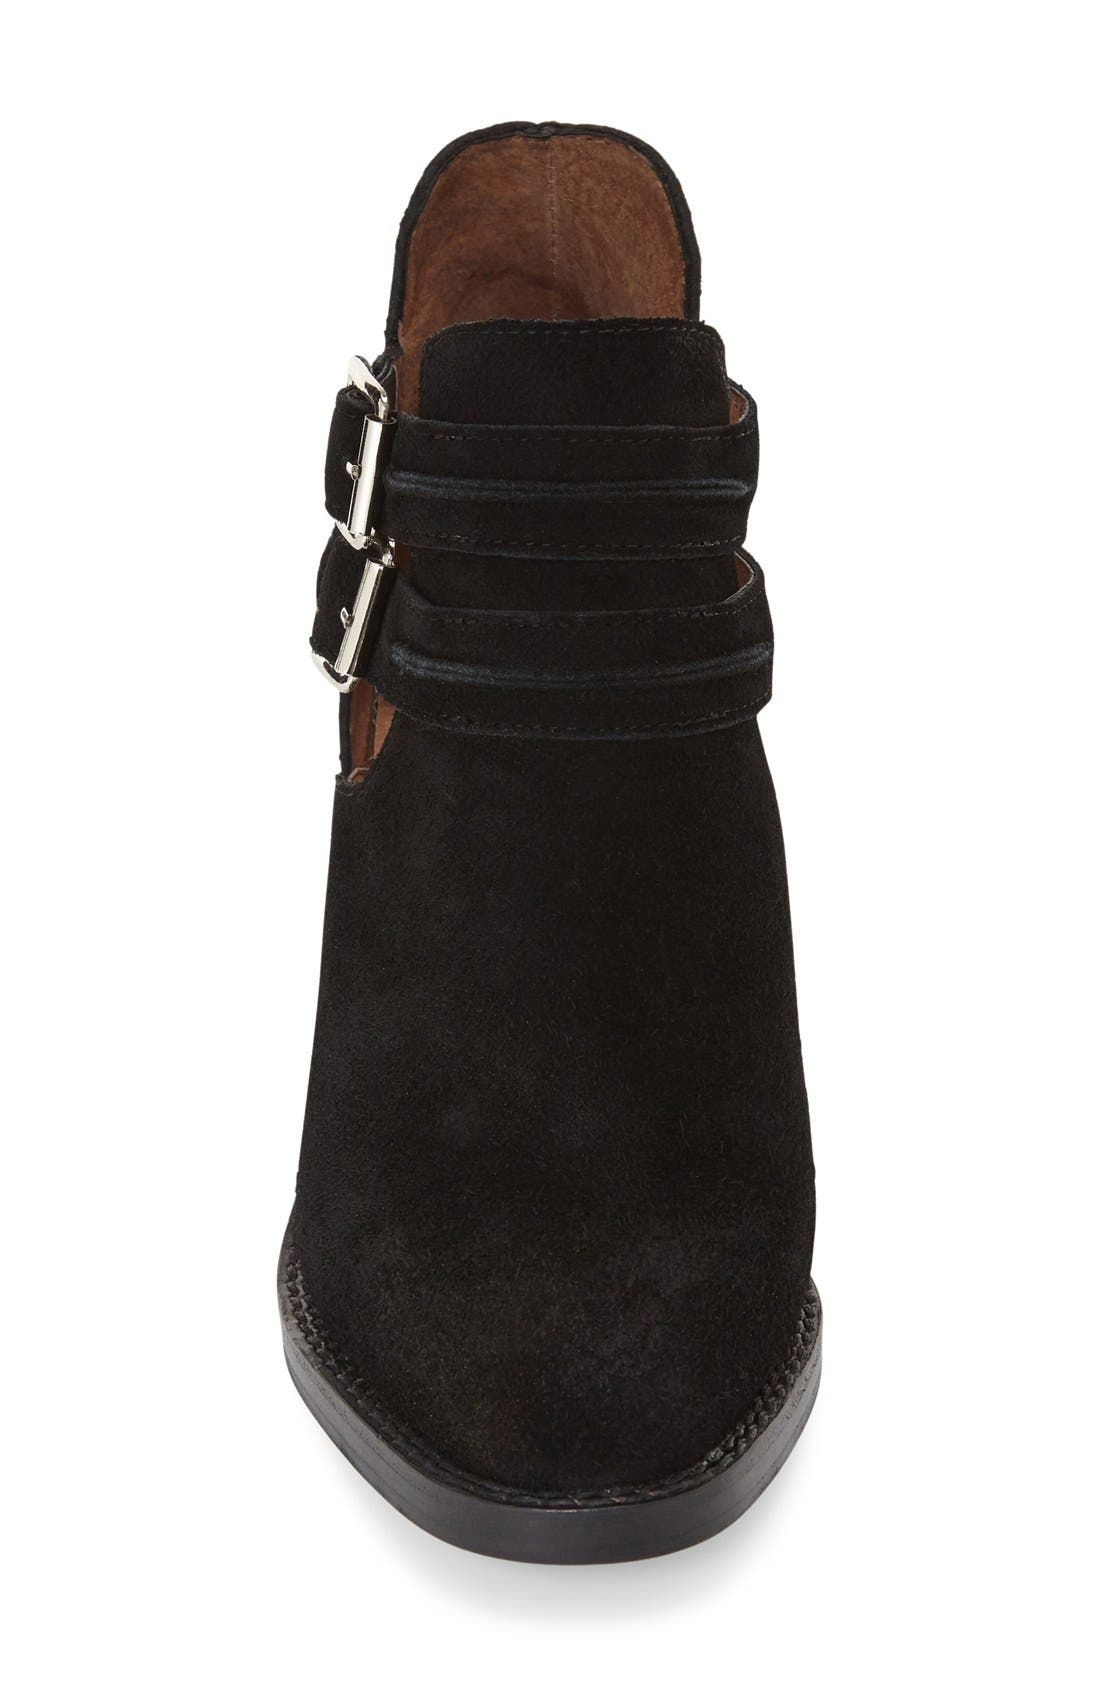 Alternate Image 3  - Jeffrey Campbell 'Roycroft' Bootie (Women)